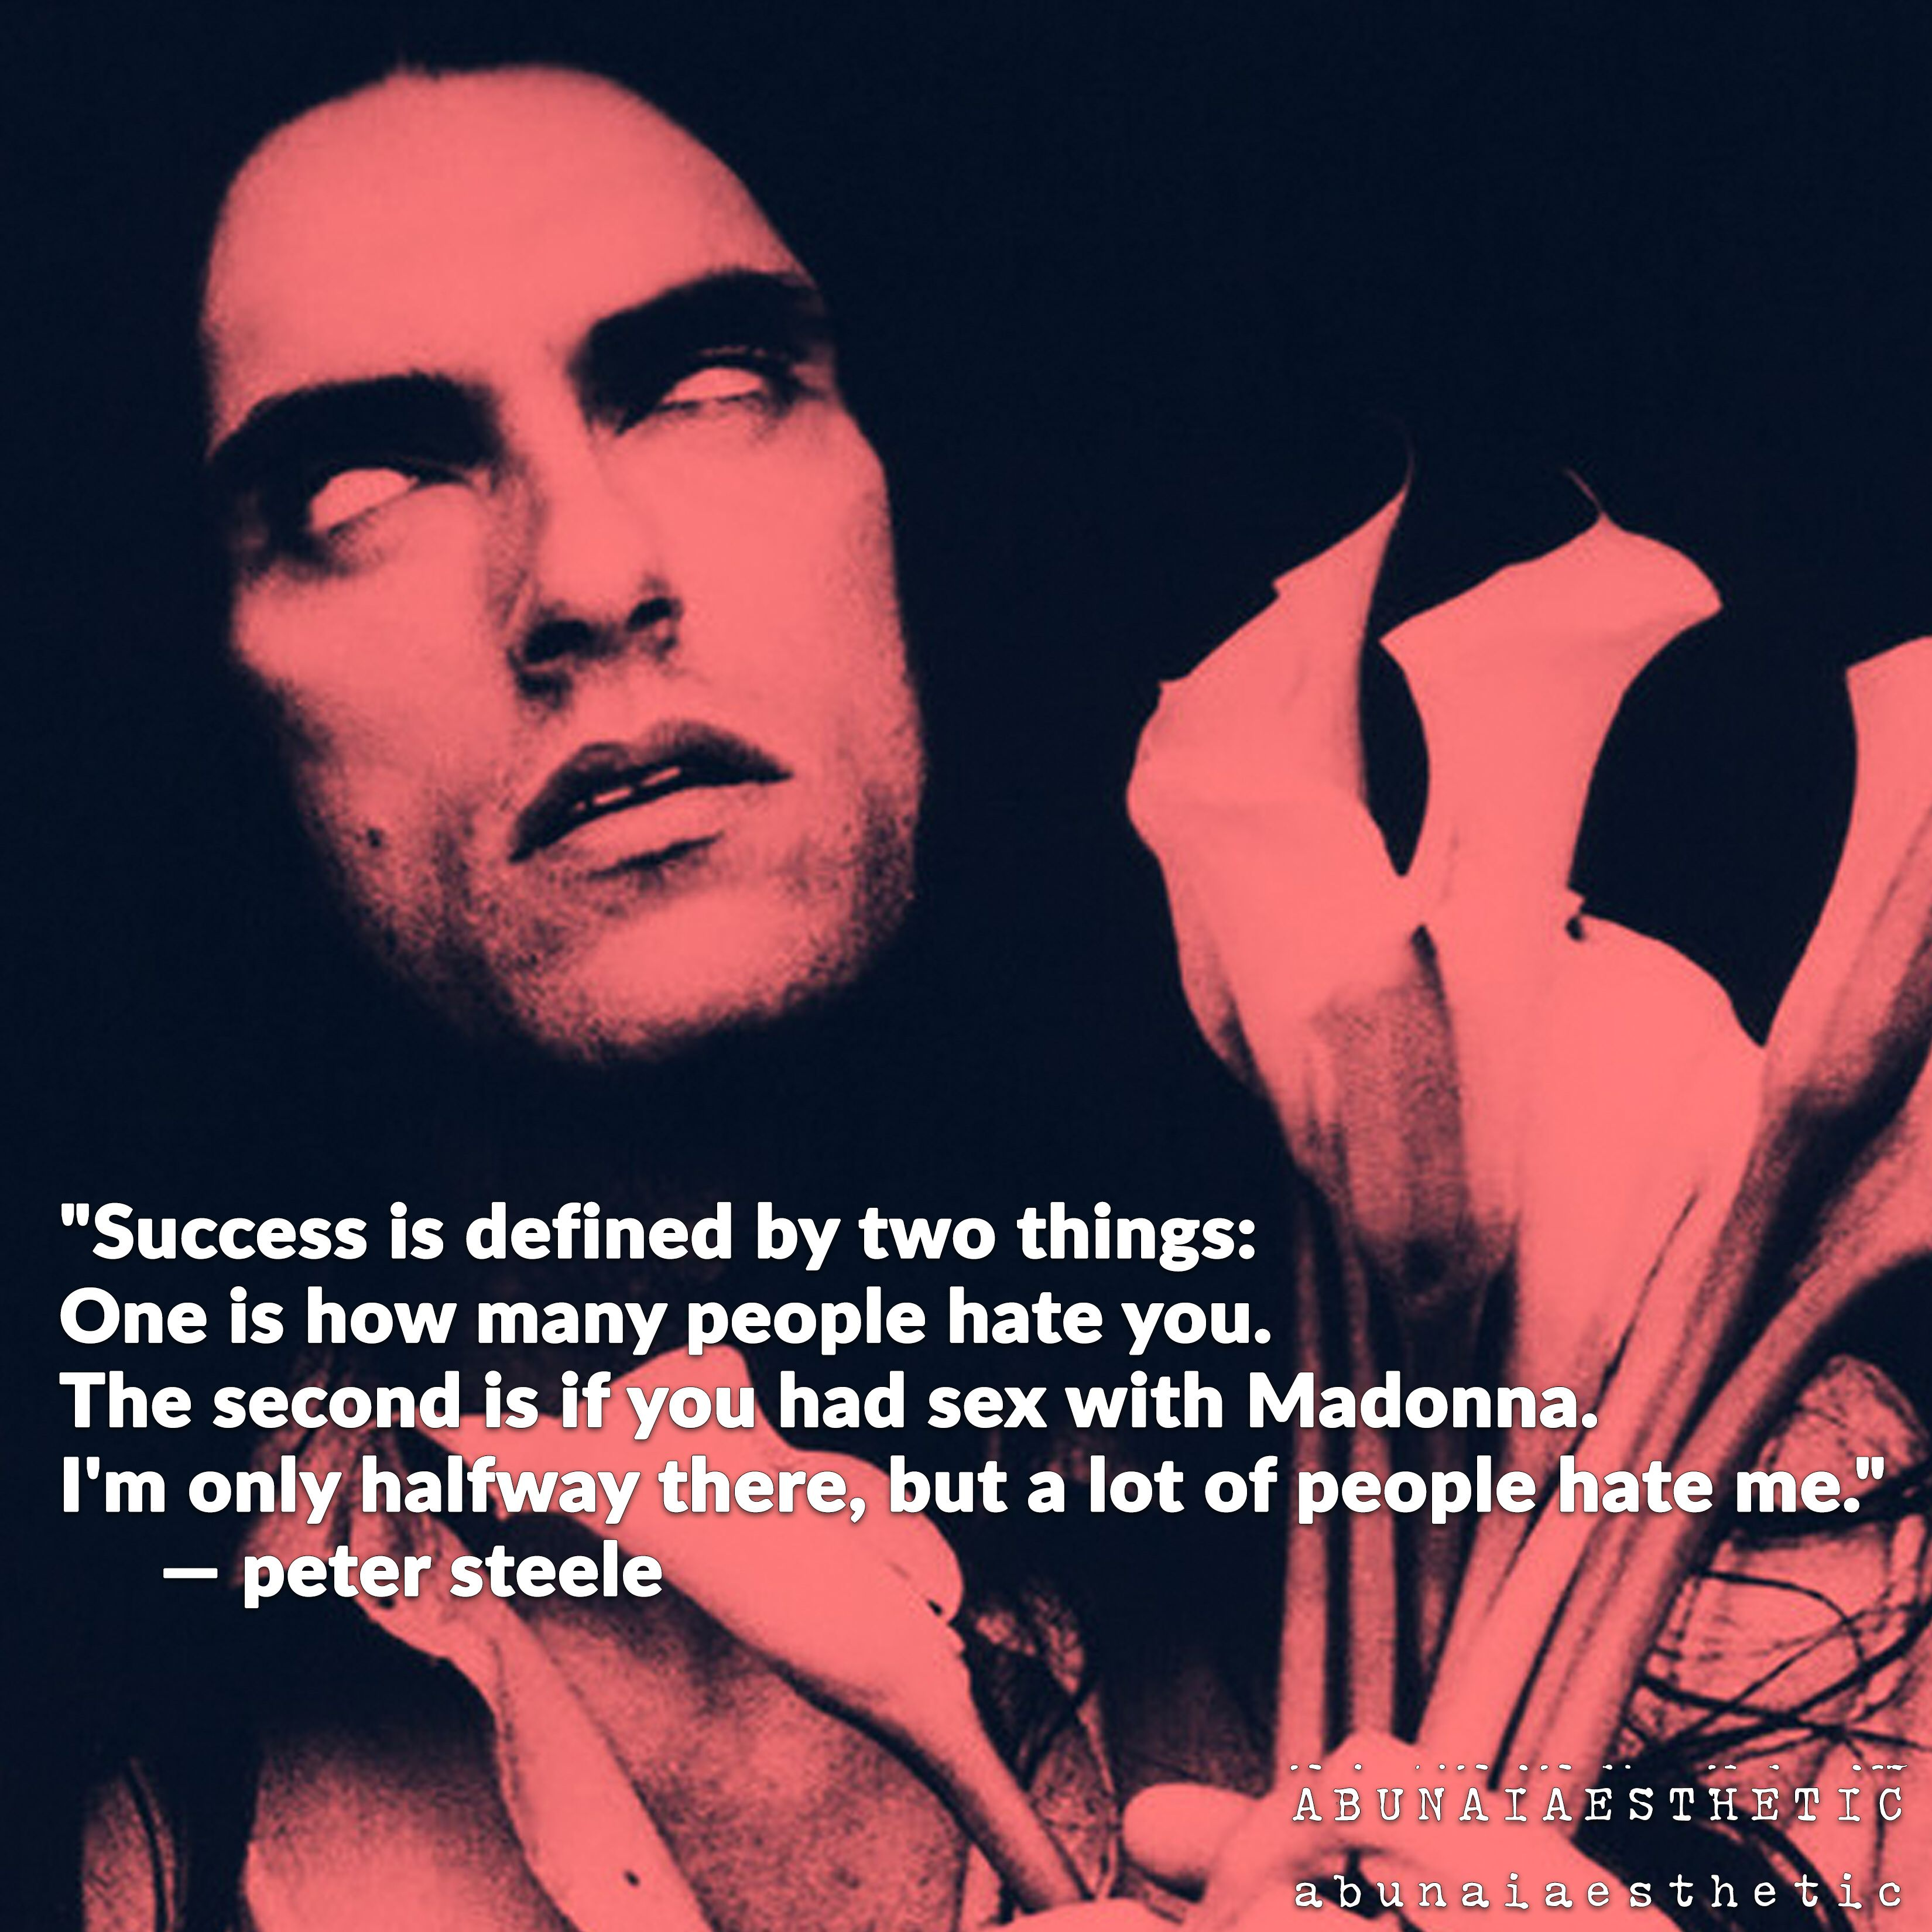 Peter Steele From Type O Negative Quote In 2020 Peter Steele Type O Negative Type O Negative Band